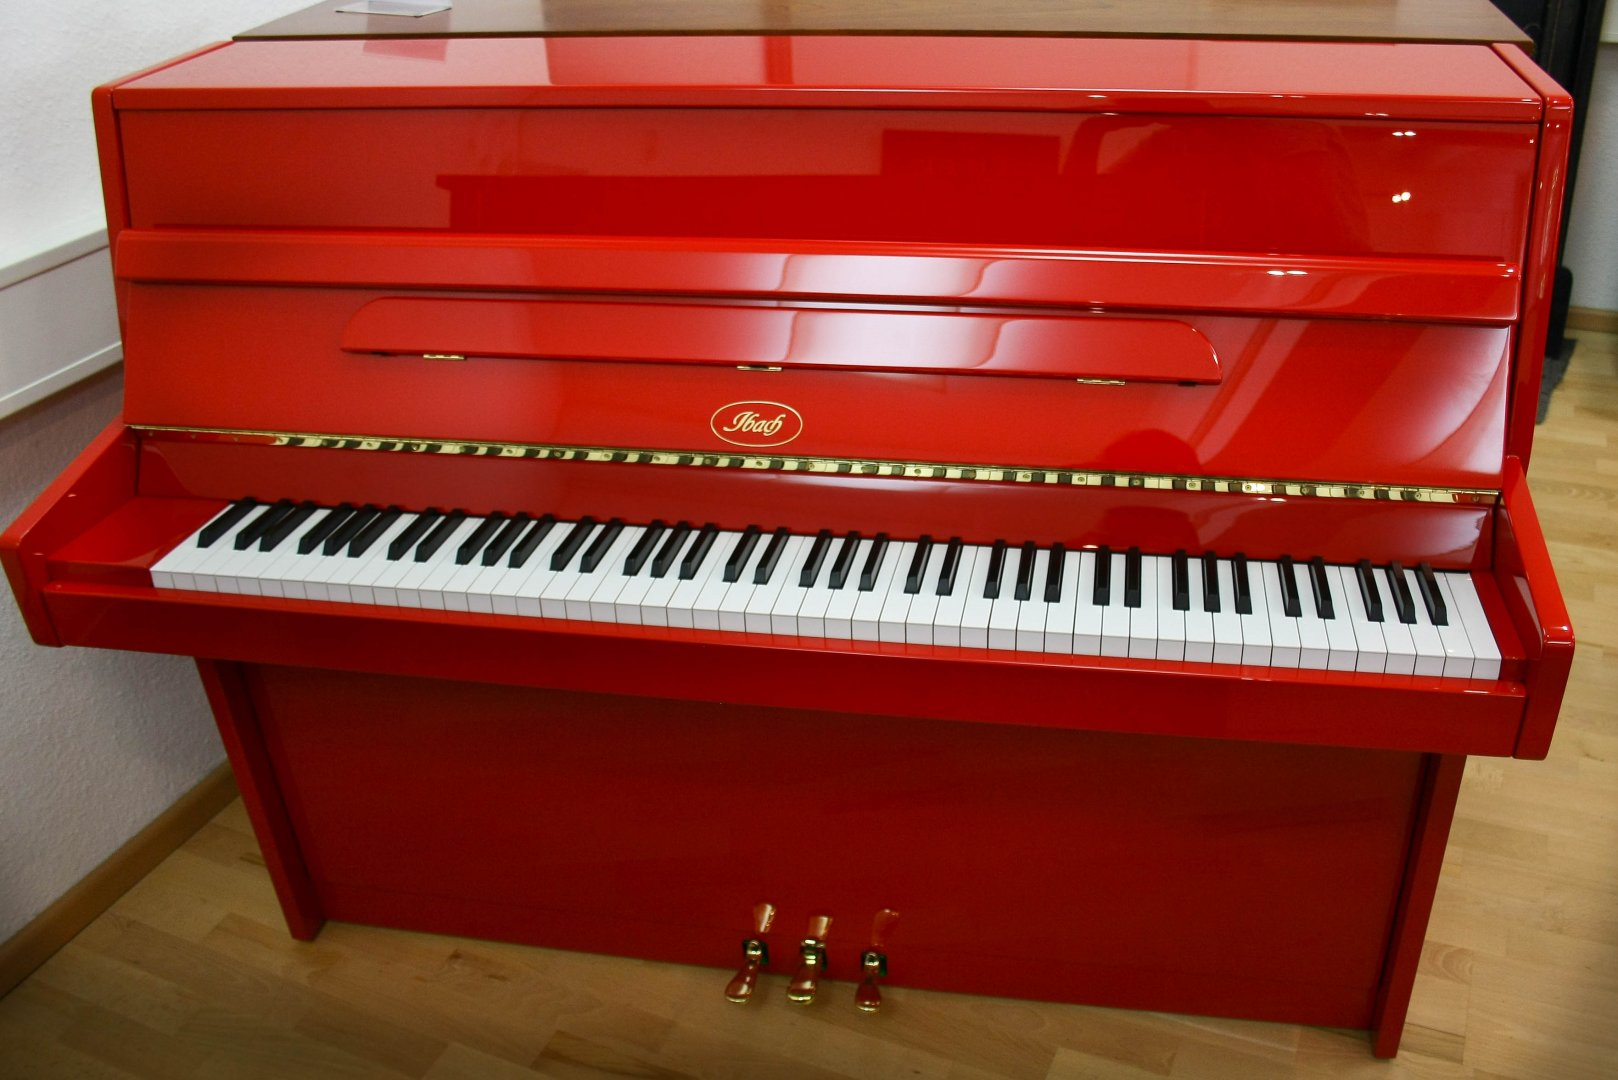 Ibach 111 cm von 1977 in Special colour glossy